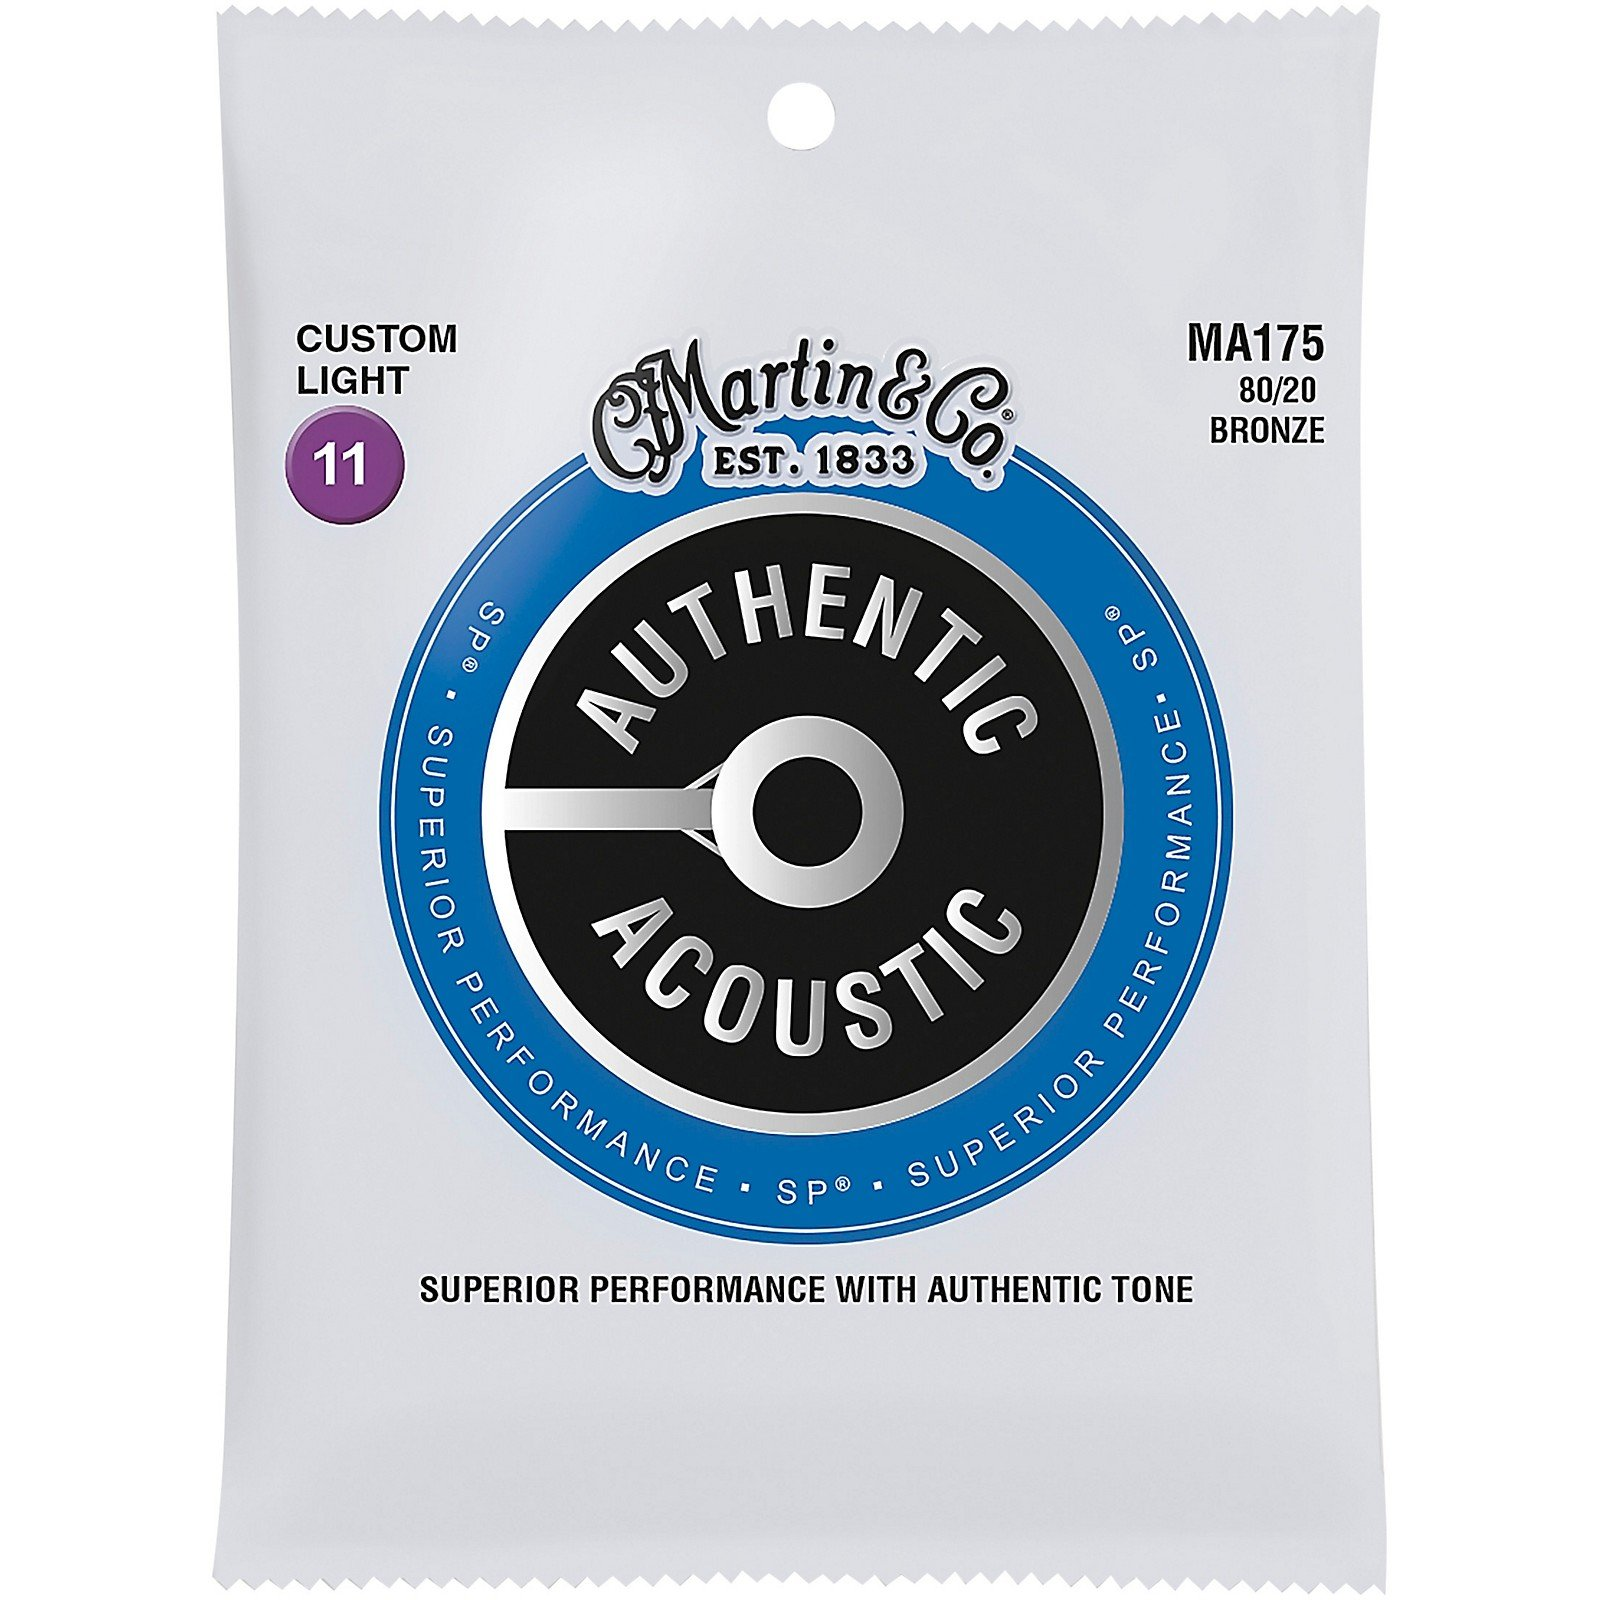 Martin MA175 Authentic Acoustic SP Phosphor Bronze Acoustic Guitar Strings, Custom Light 11-52